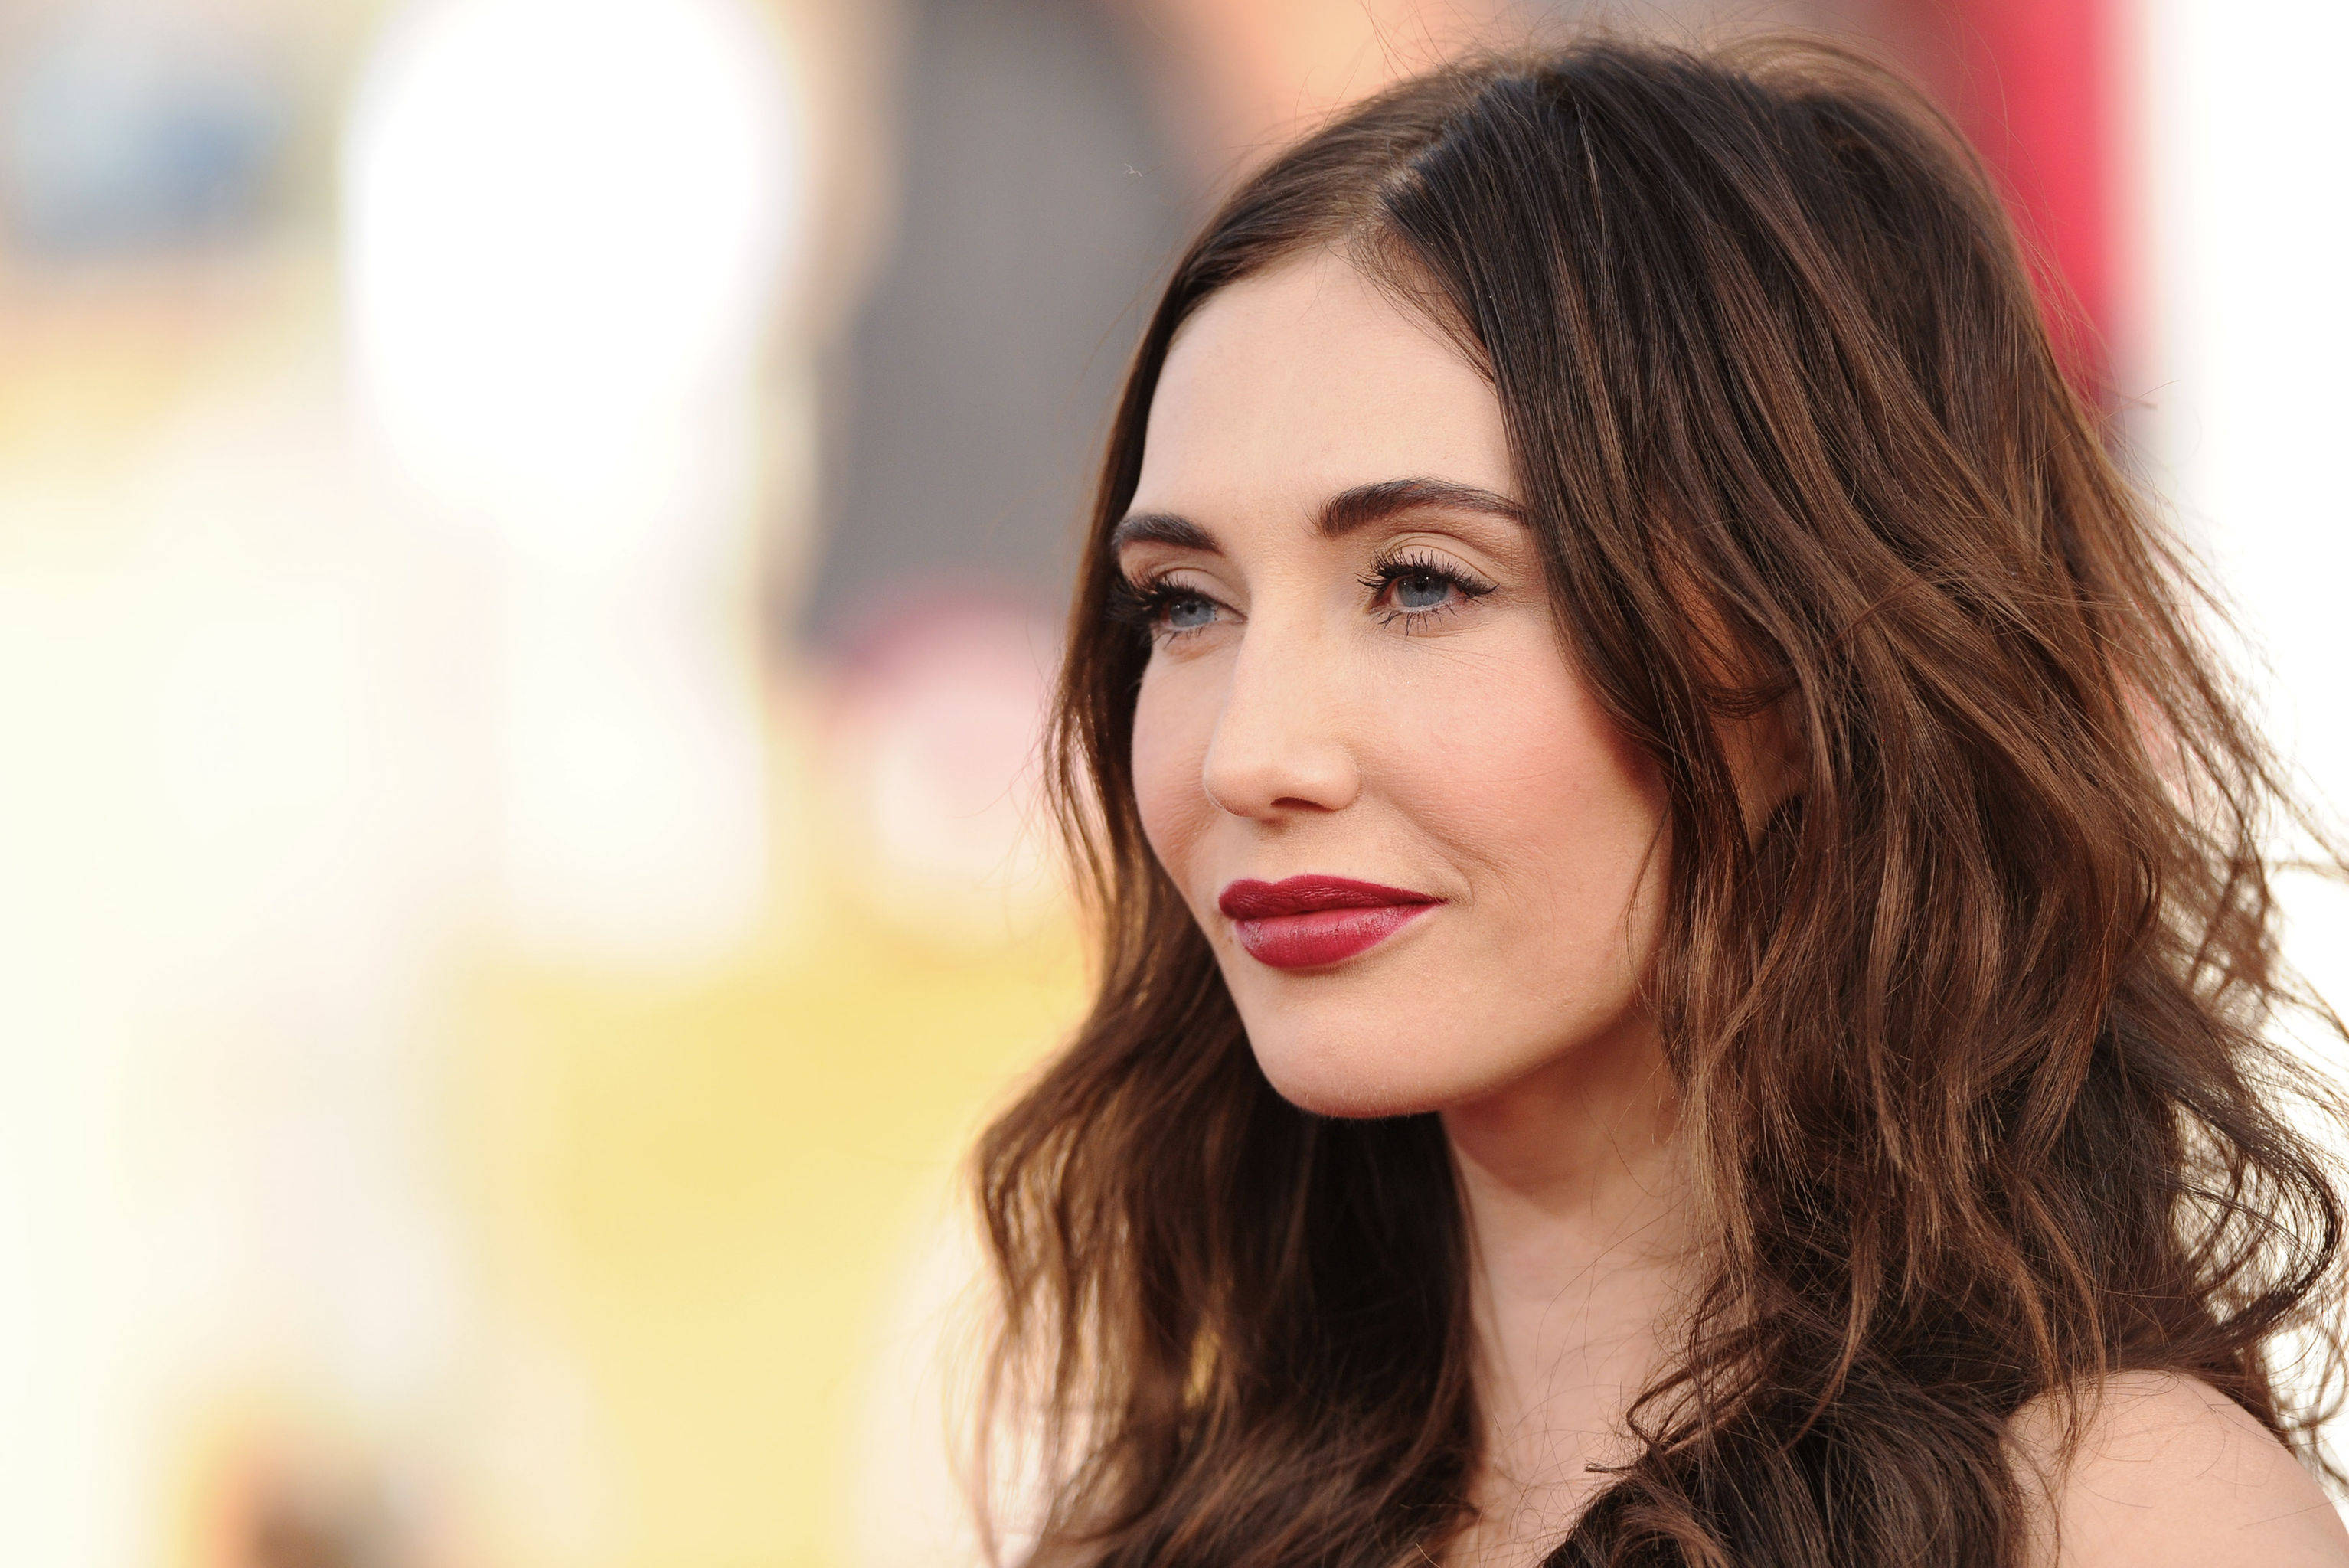 Celebrites Carice Van Houten nudes (69 photo), Pussy